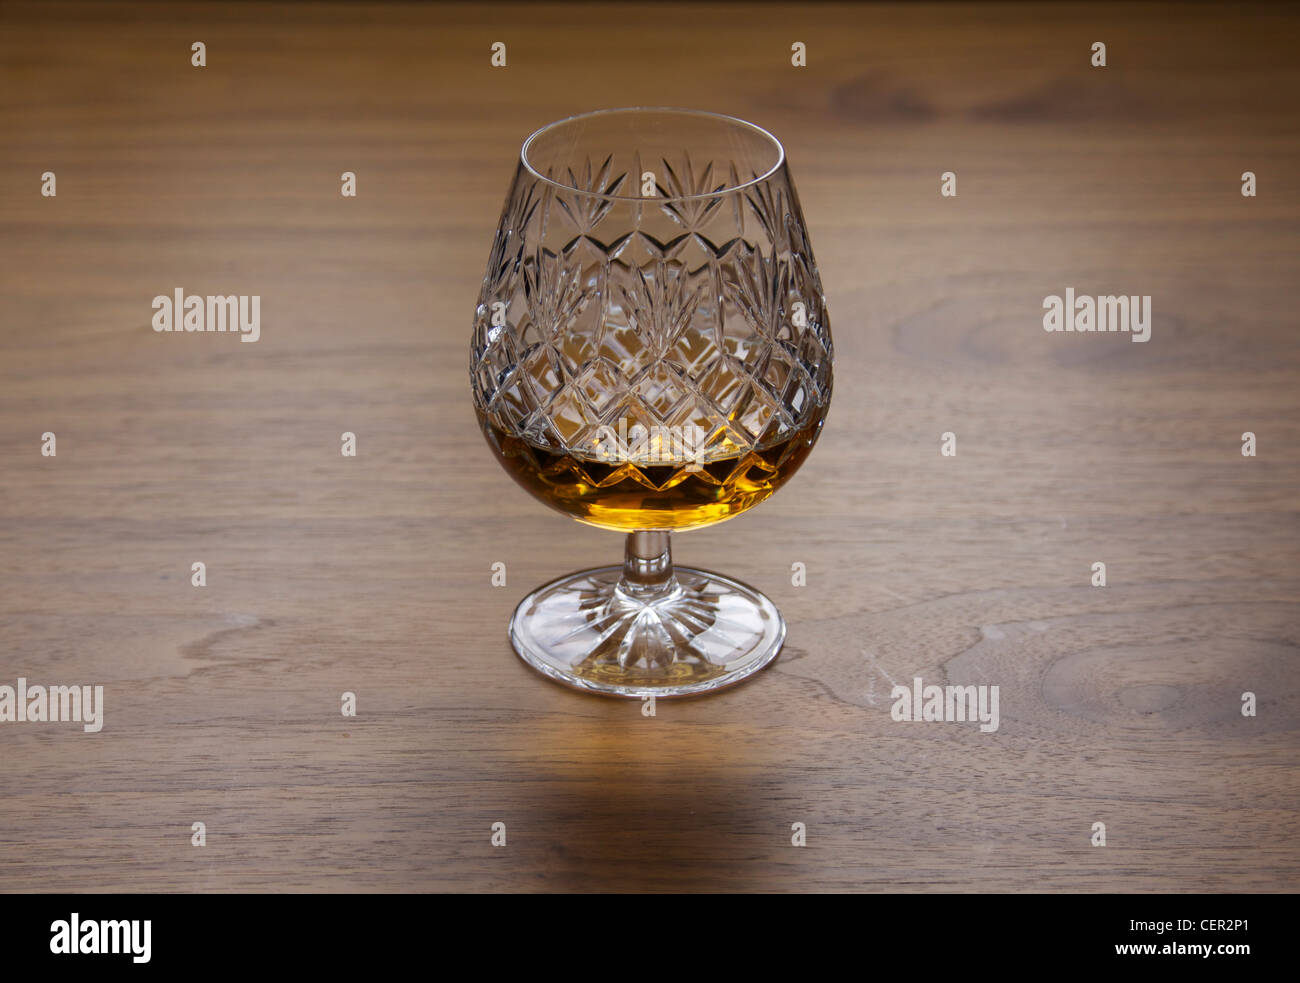 Traditional brandy glass made from cut crystal with brandy or whiskey whisky with diamond detail pattern on wooden - Stock Image